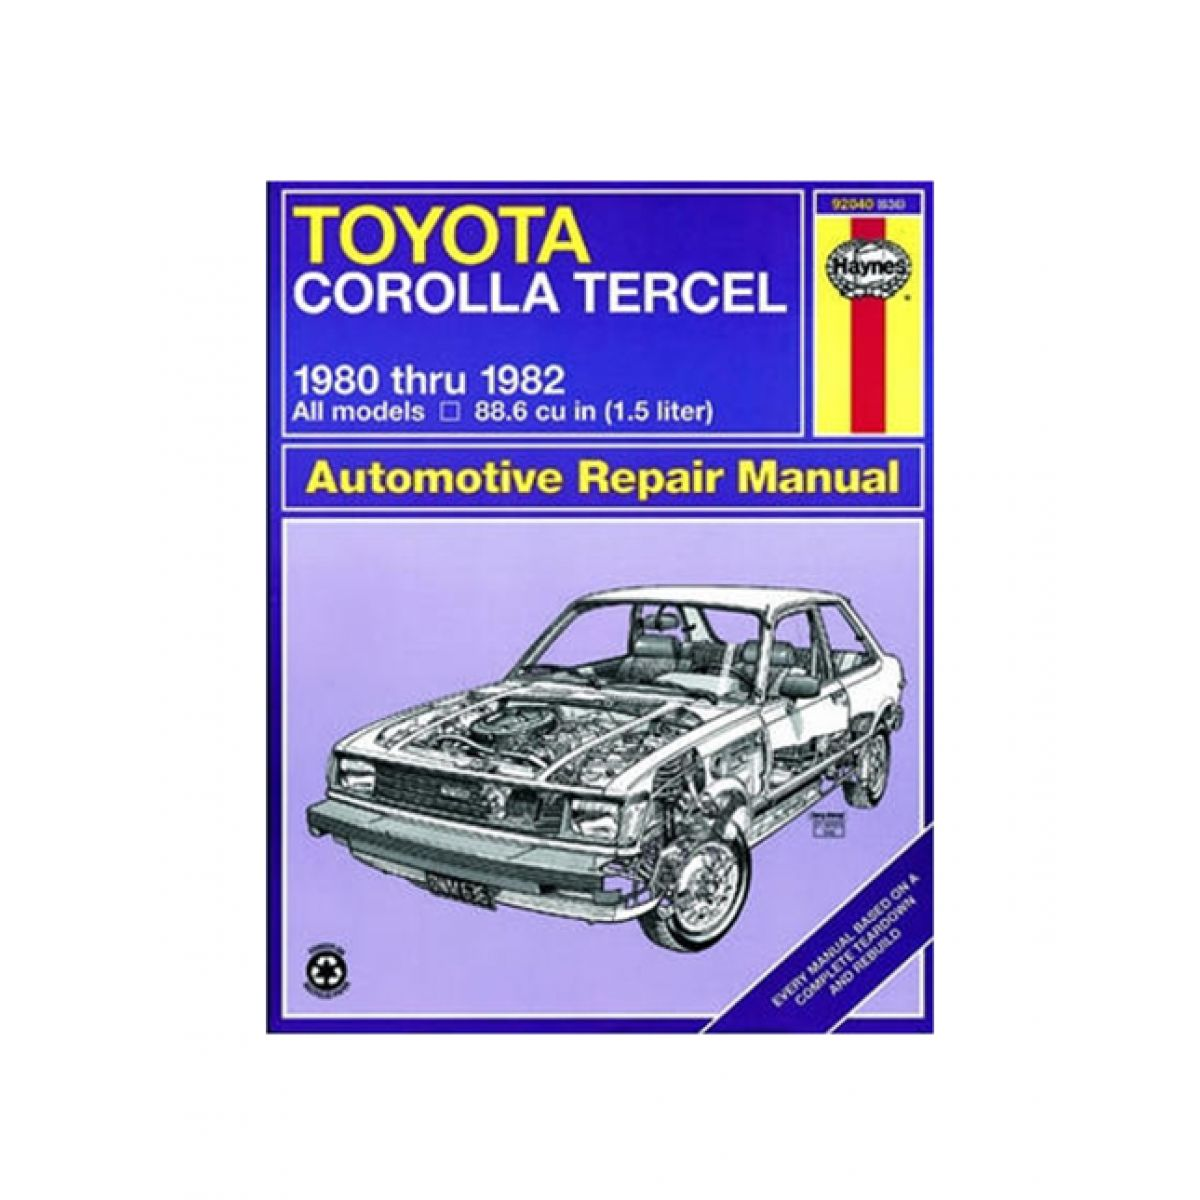 haynes repair manual for 1980 1982 toyota corolla tercel ebay rh ebay com  1995 Toyota Corolla Repair Manual 1997 Toyota Corolla Repair Manual